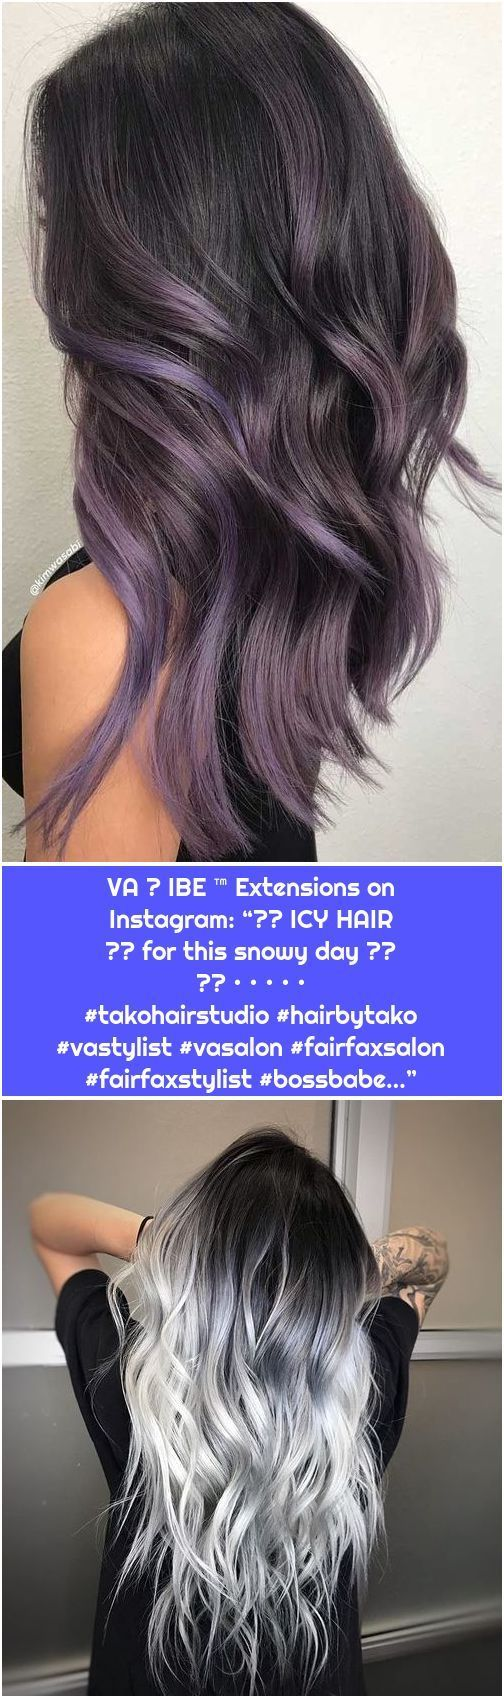 """1. Trendy Winter Hair Color Ideas VA ☆ IBE ™ Extensions on Instagram: """"❄️ ICY HAIR ❄️ for this snowy day ⛄️ ❄️ • • • • • #takohairstudio #hairbytako #vastylist #vasalon #blue and purple hair underlights #day #Extensions #Hair #IBE #ICY #Instagram #snowy"""